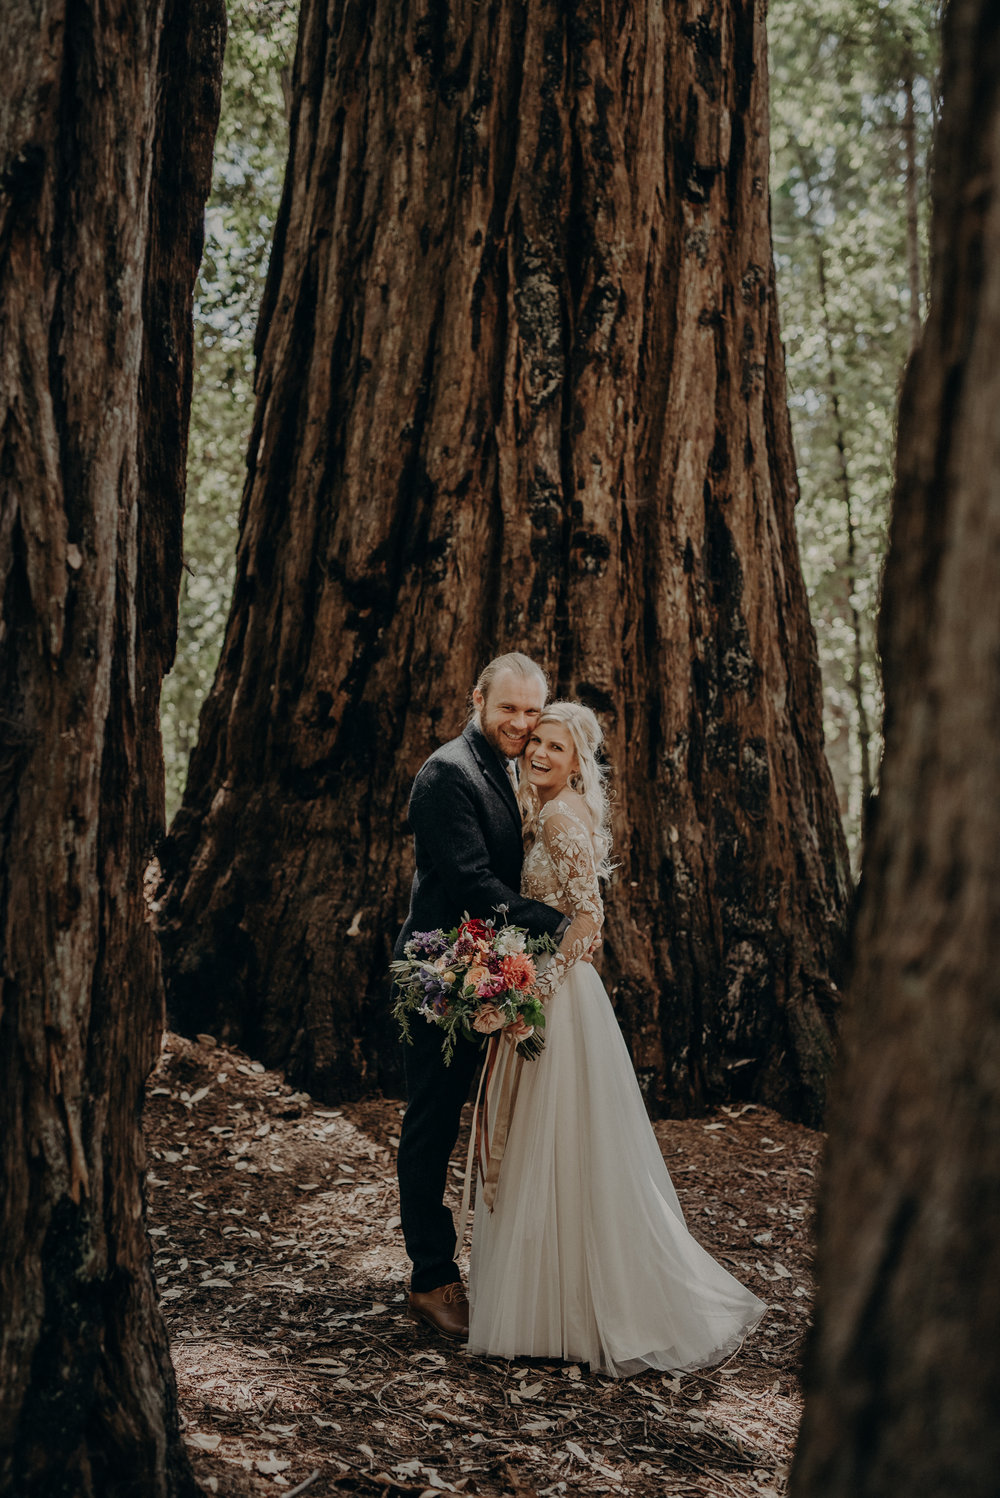 IsaiahAndTaylor.com - California Destination Elopement, Lake Leonard Reserve Wedding, Ukiah-058.jpg